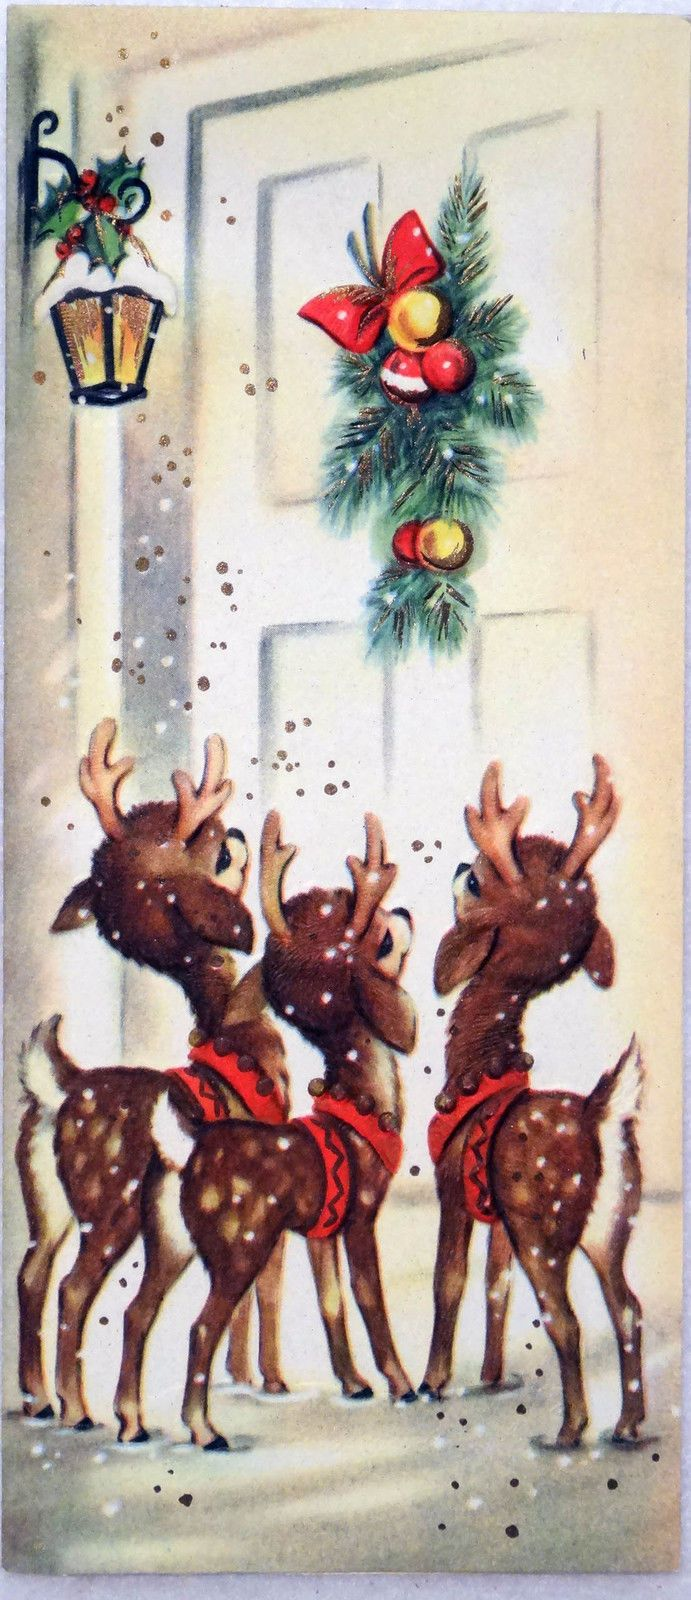 647 50s Deer at The time.  Vintage Christmas Greeting Card .  Brings memories of simpler days